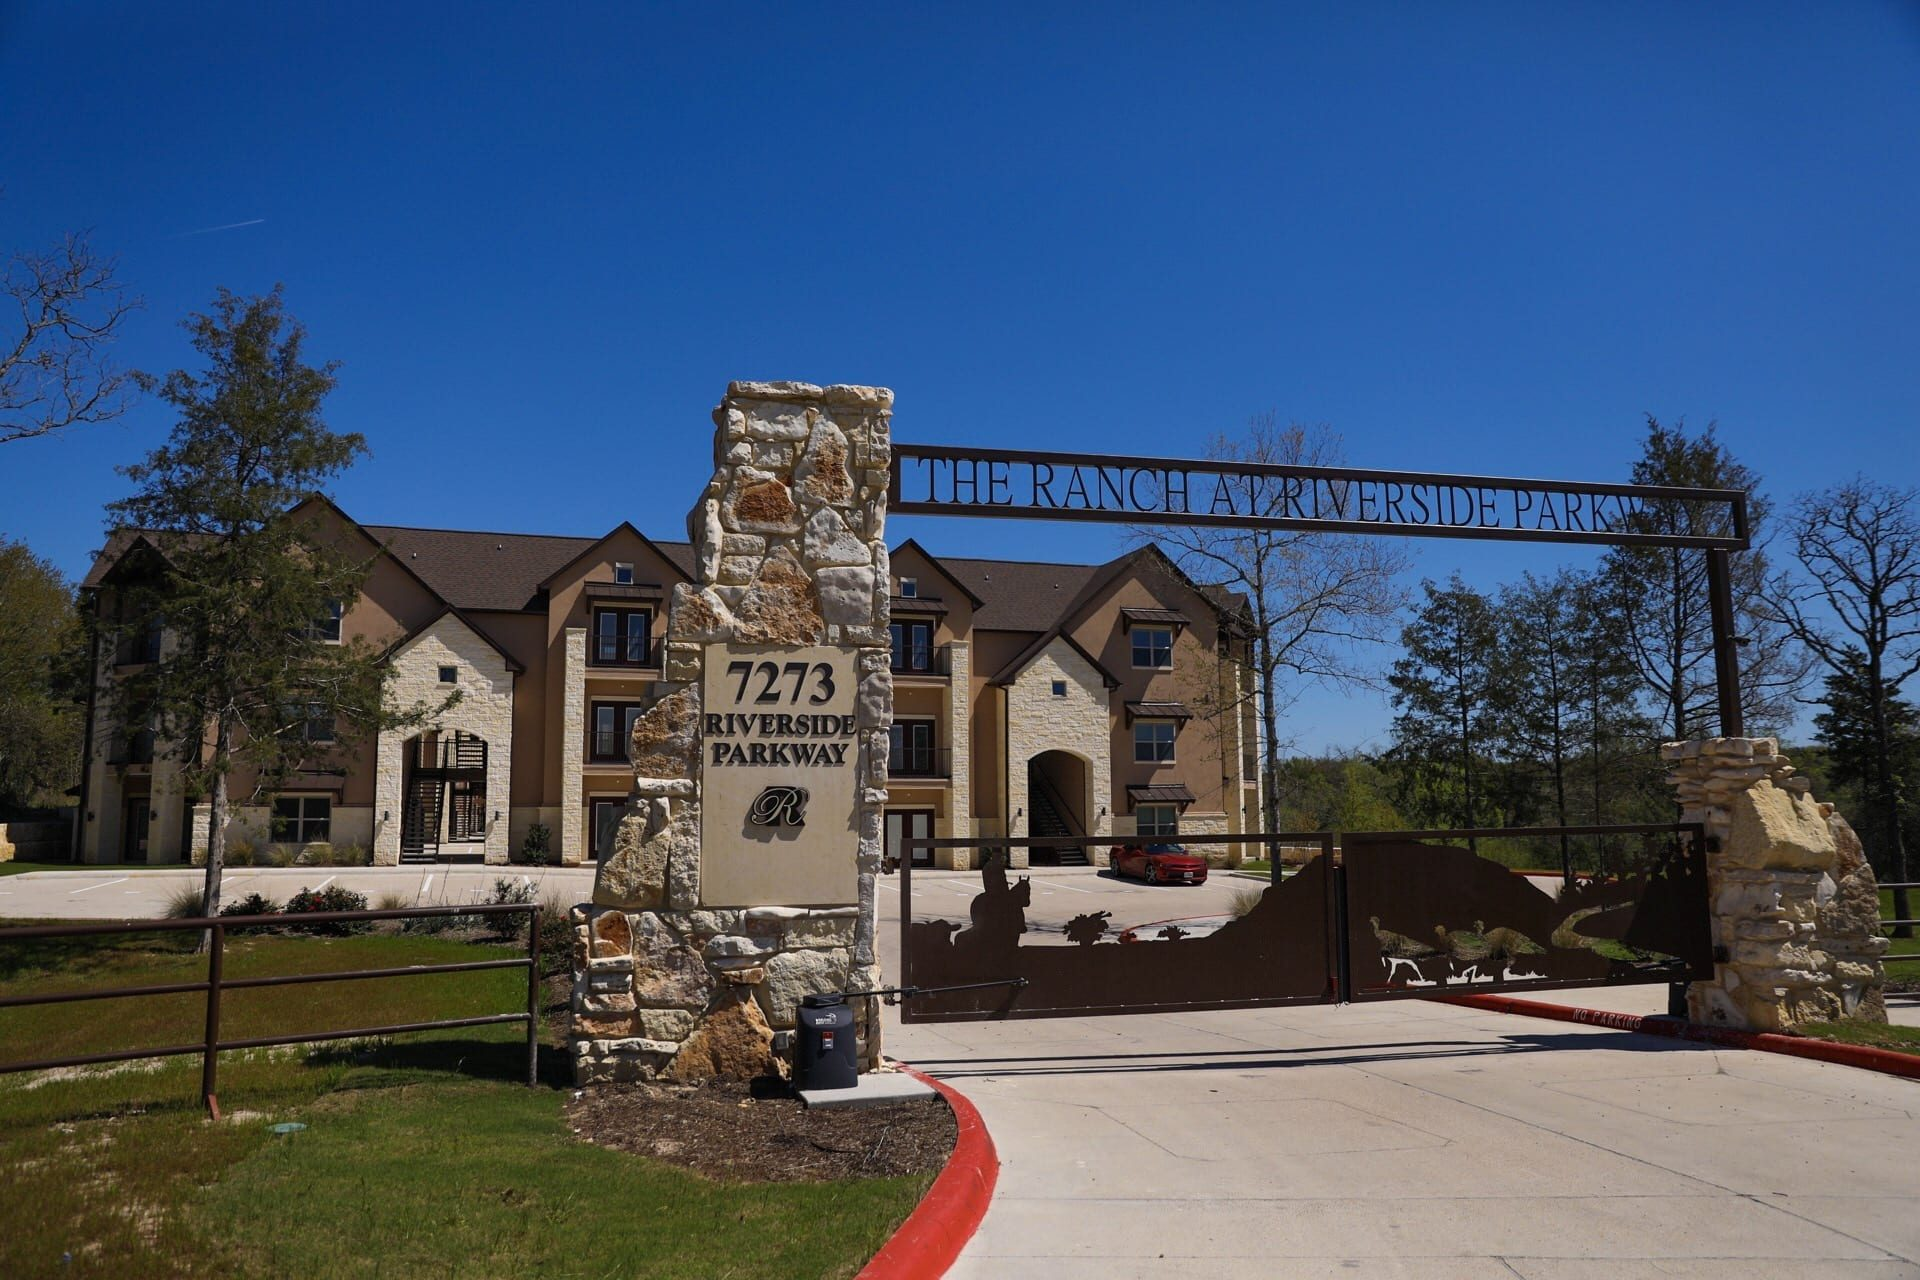 Voted Best New Apartments For Professionals In Bryan College Station The Ranch At Riverside Parkway Next To Texas A M Of Veterinary Medicine